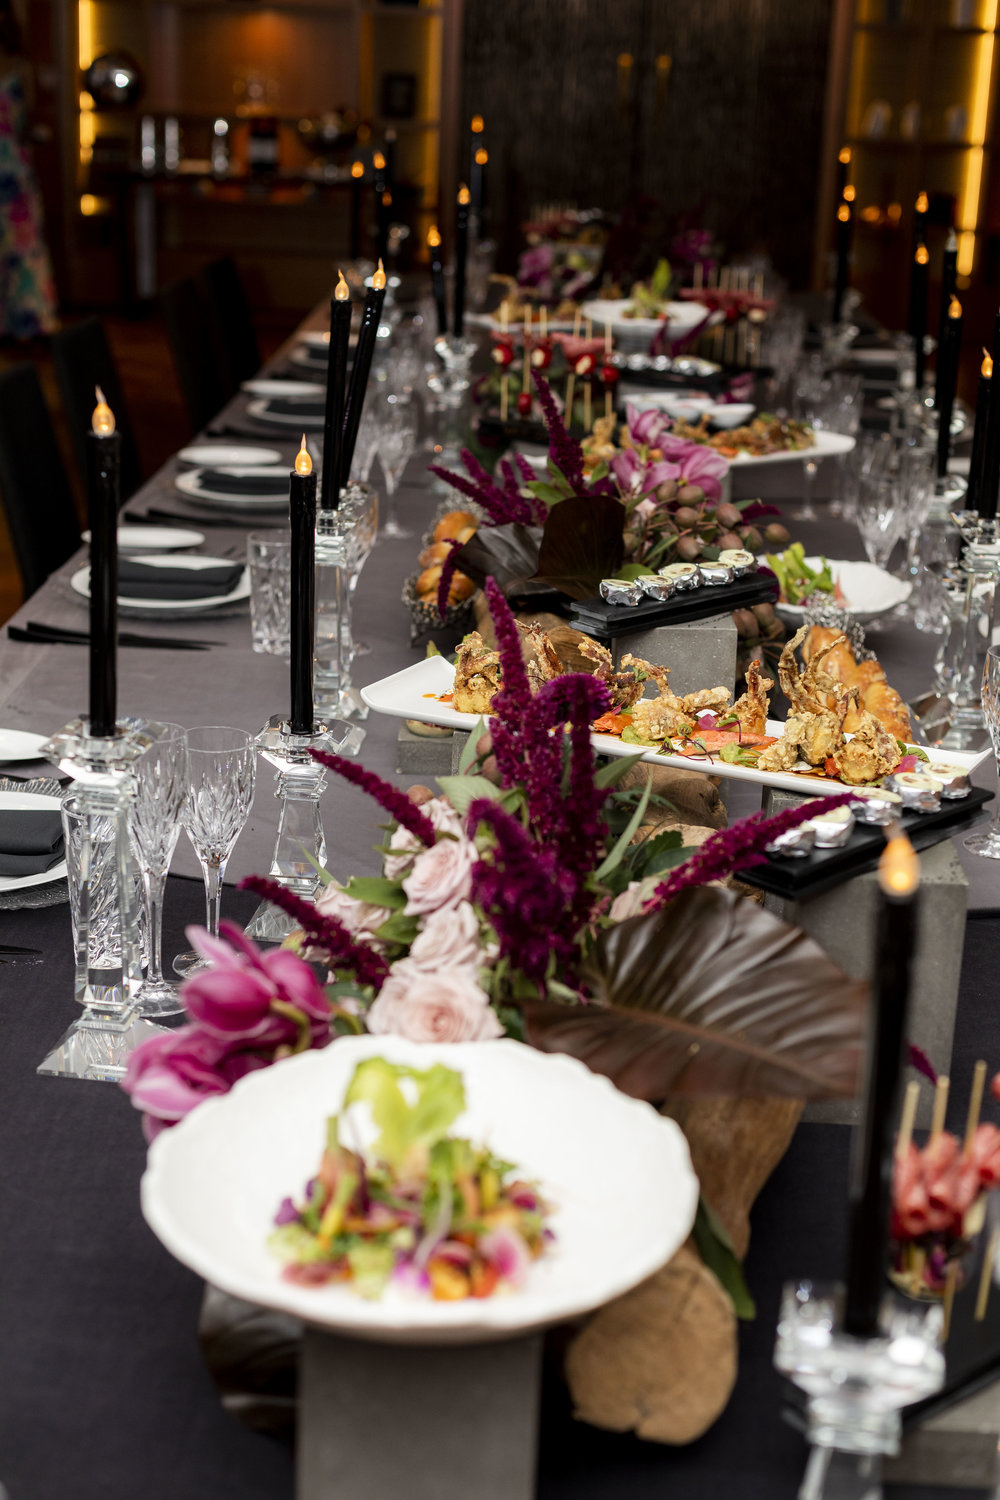 Corporate_dinner_event_design_Sydney_Inlighten_Photography_flowers_charger_plates_black_cutlery_events_by_nadia_10.jpg